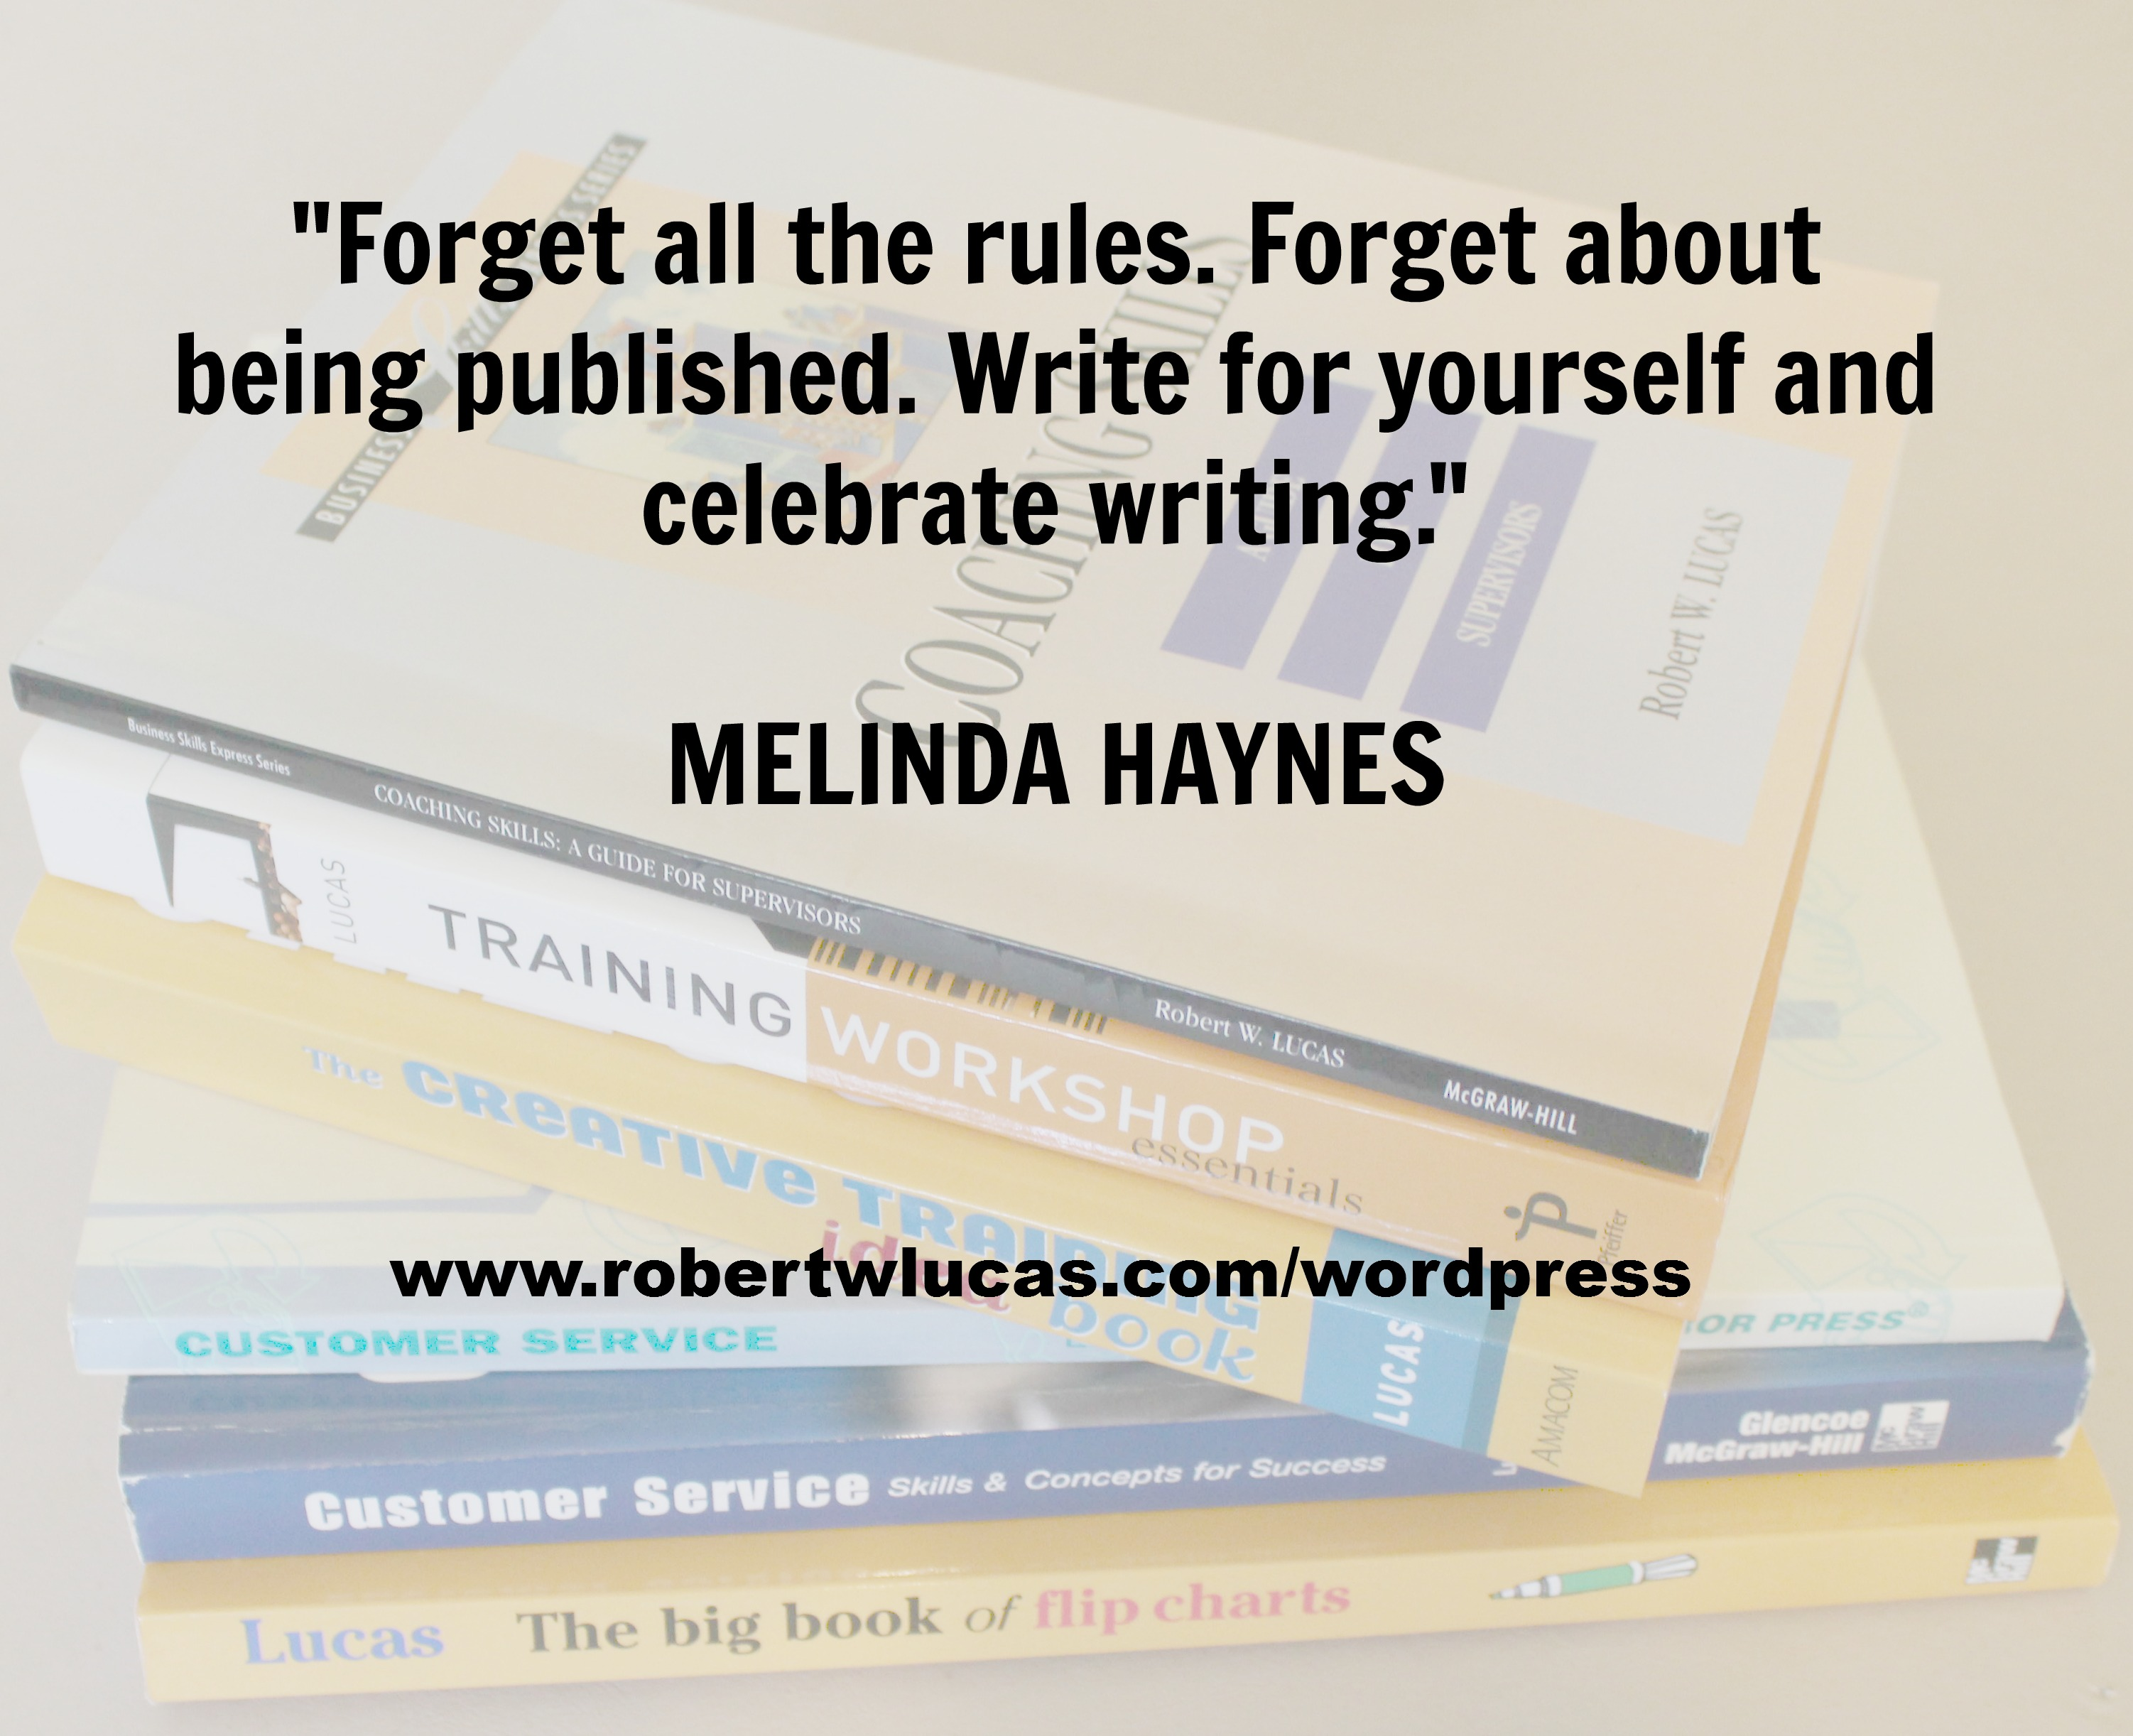 Inspirational Writing Quotes Inspirational Writing Quote   Melinda Haynes   Nonfiction Author  Inspirational Writing Quotes